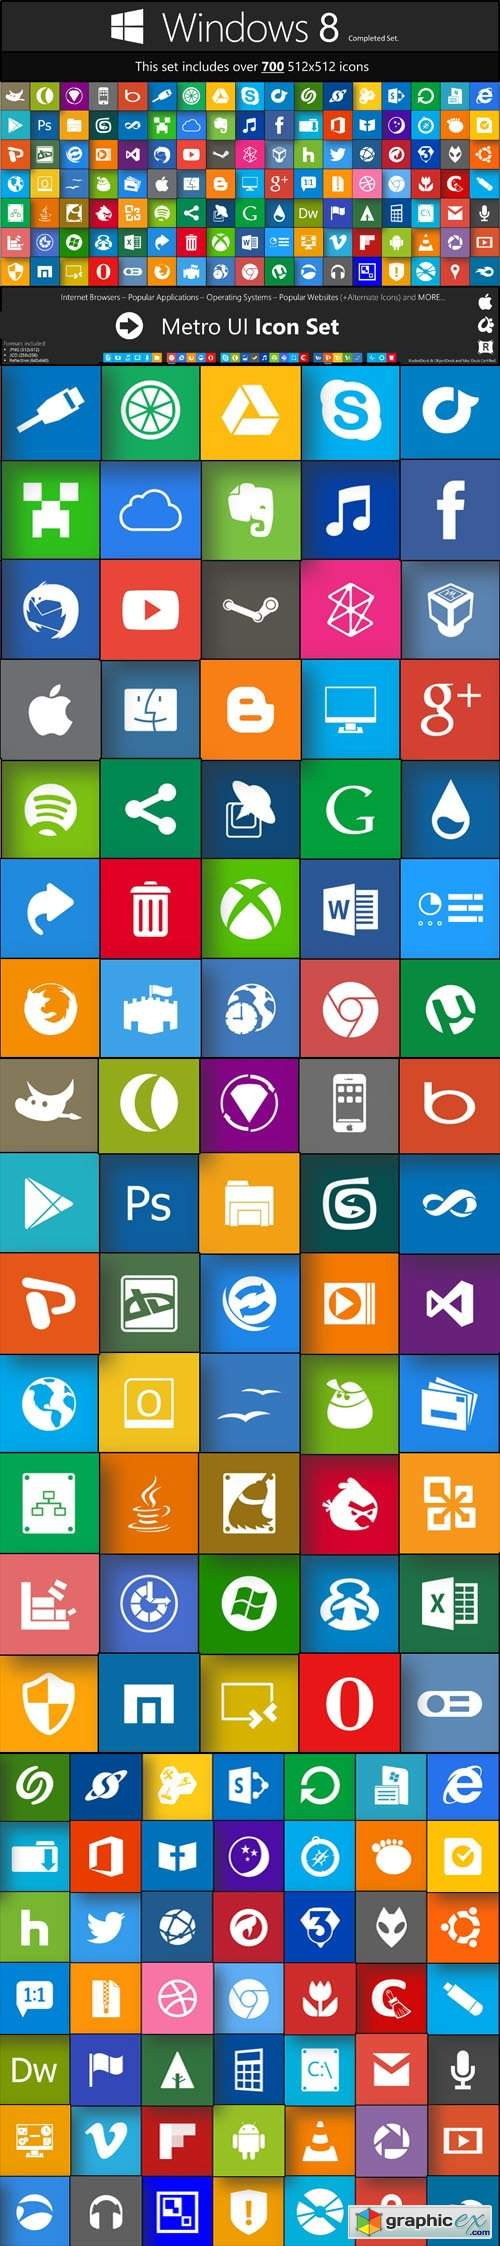 Win 8 Icons - Metro UI Icon Completed Set - 700+ Icons